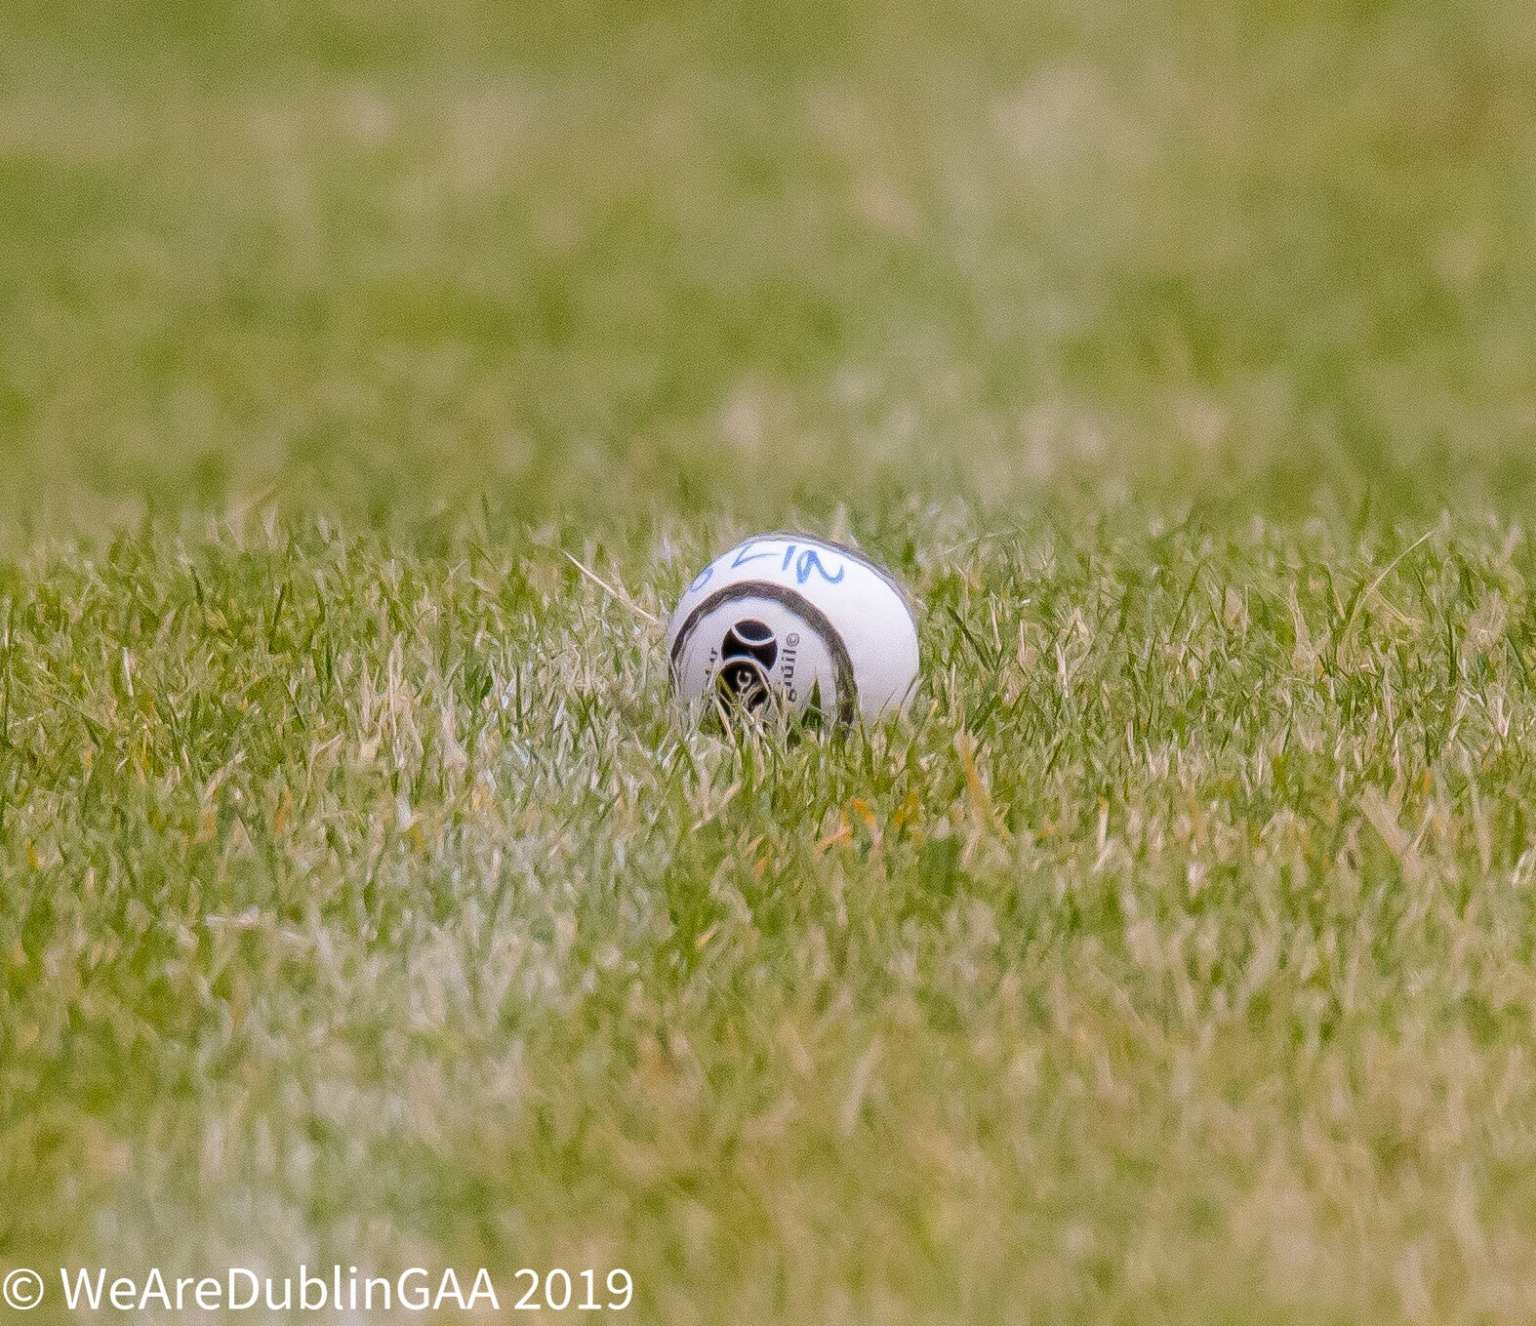 A Sliotar on a grass pitch same as the one used by the Dublin Senior, Intermediate and U16A in the championship games this weekend.